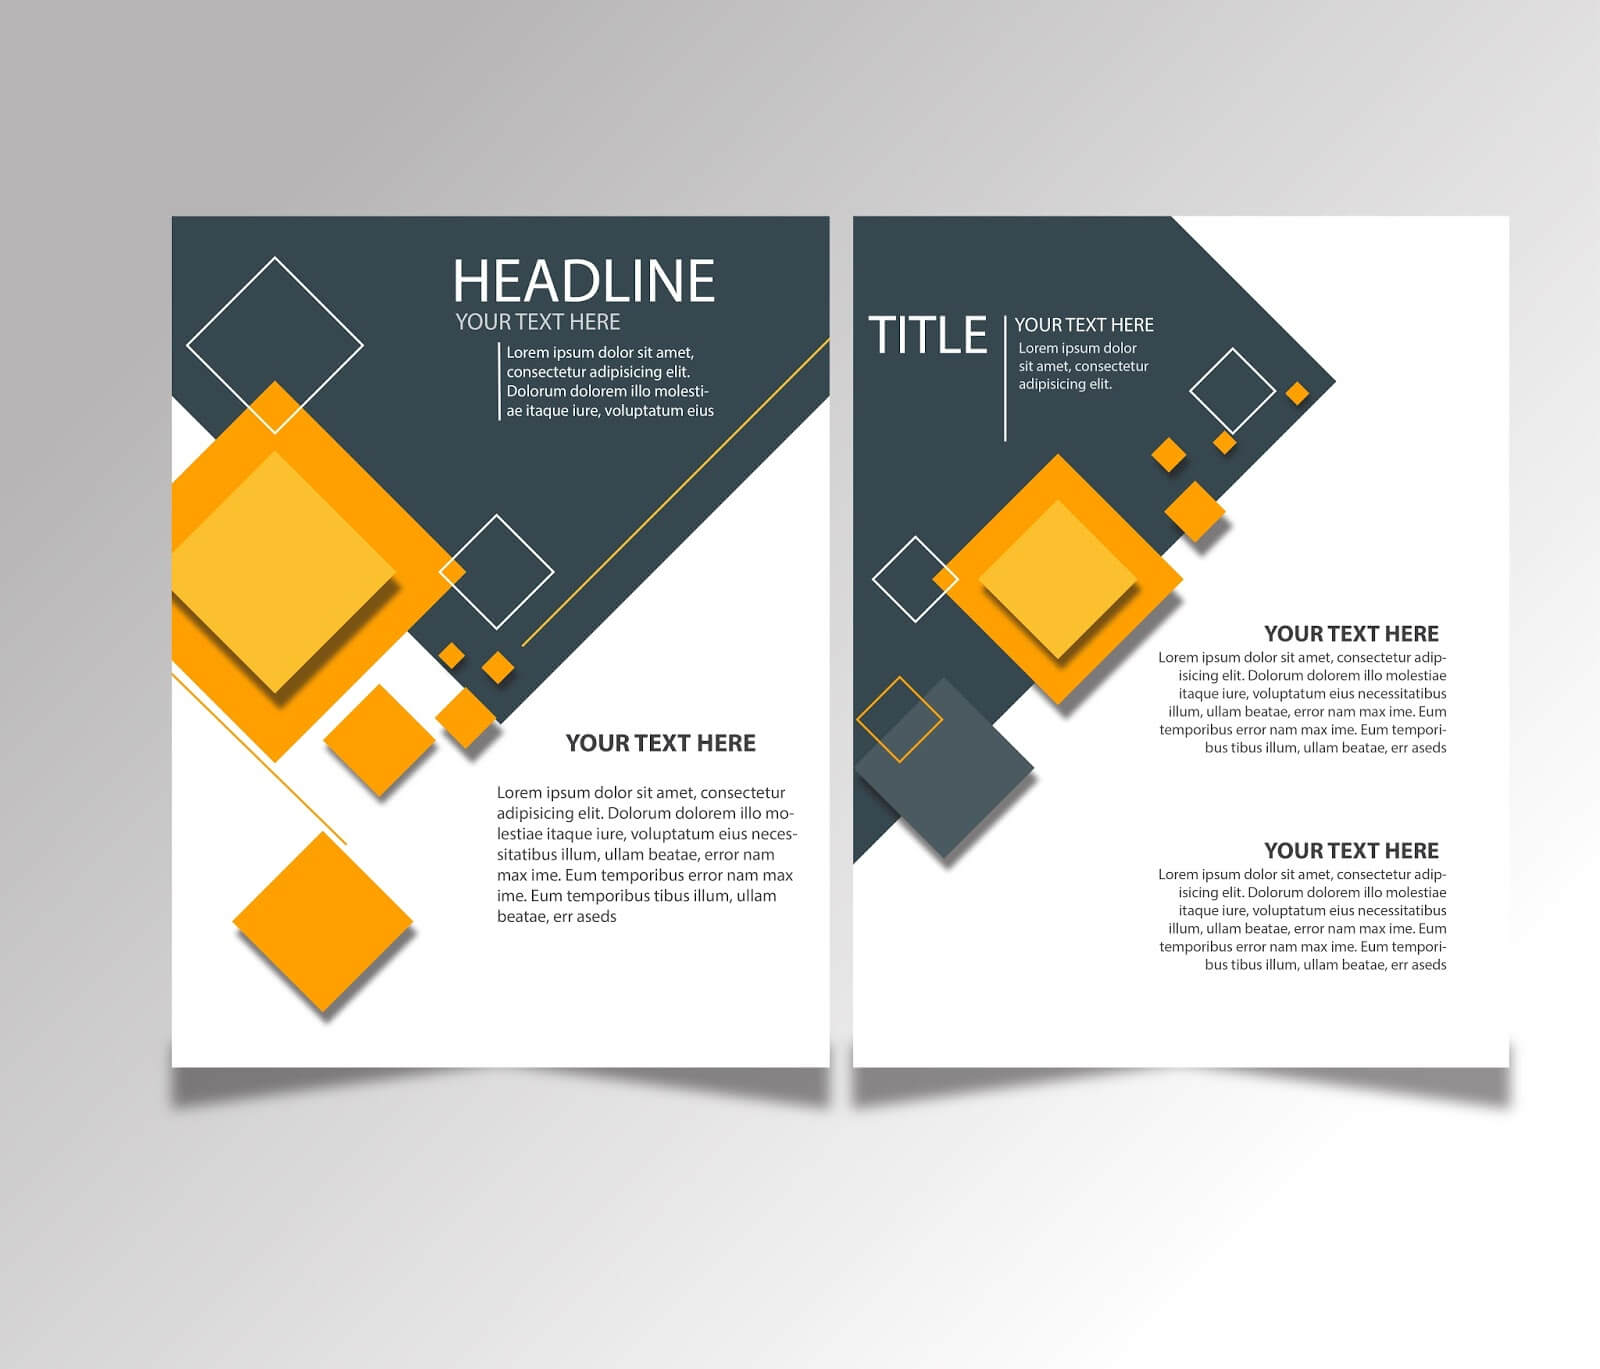 Free Download Brochure Design Templates Ai Files - Ideosprocess Regarding Brochure Templates Ai Free Download